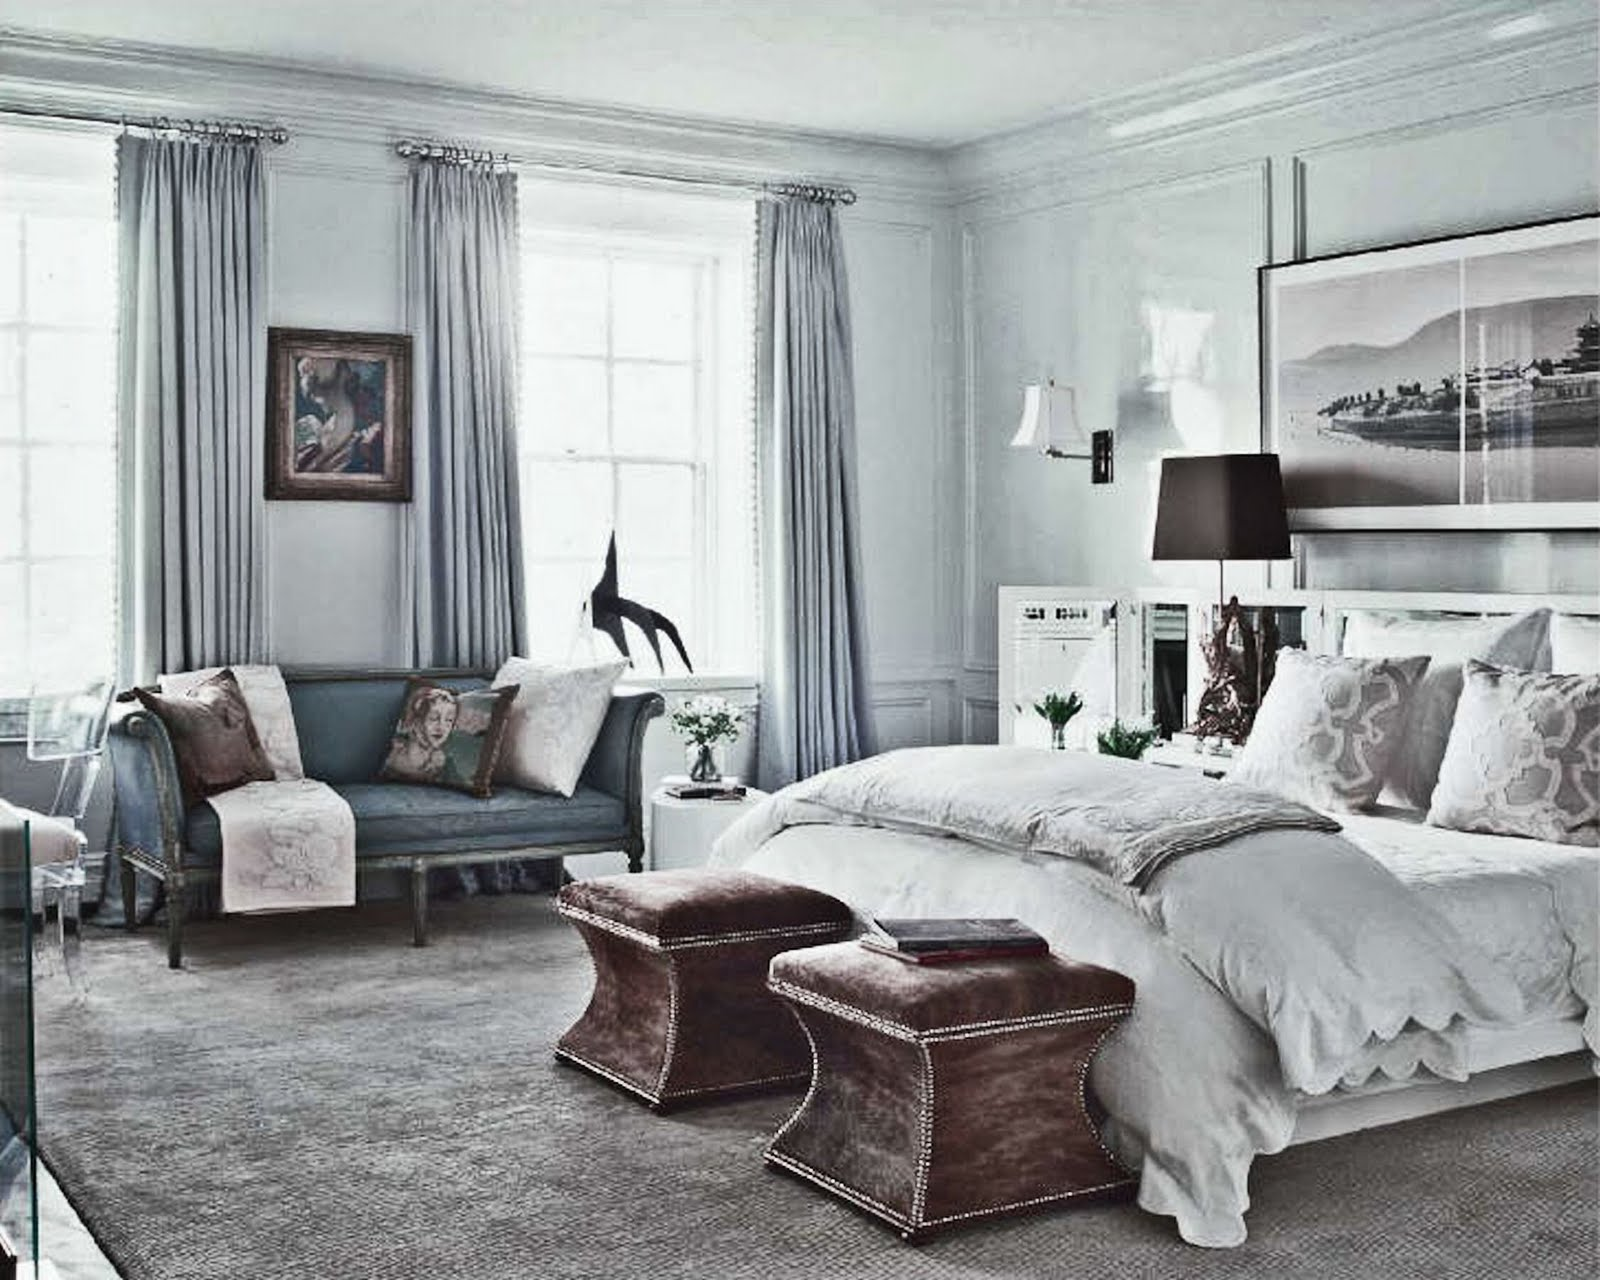 Simple everyday glamour picture perfect bedroom for Perfect bedroom design ideas